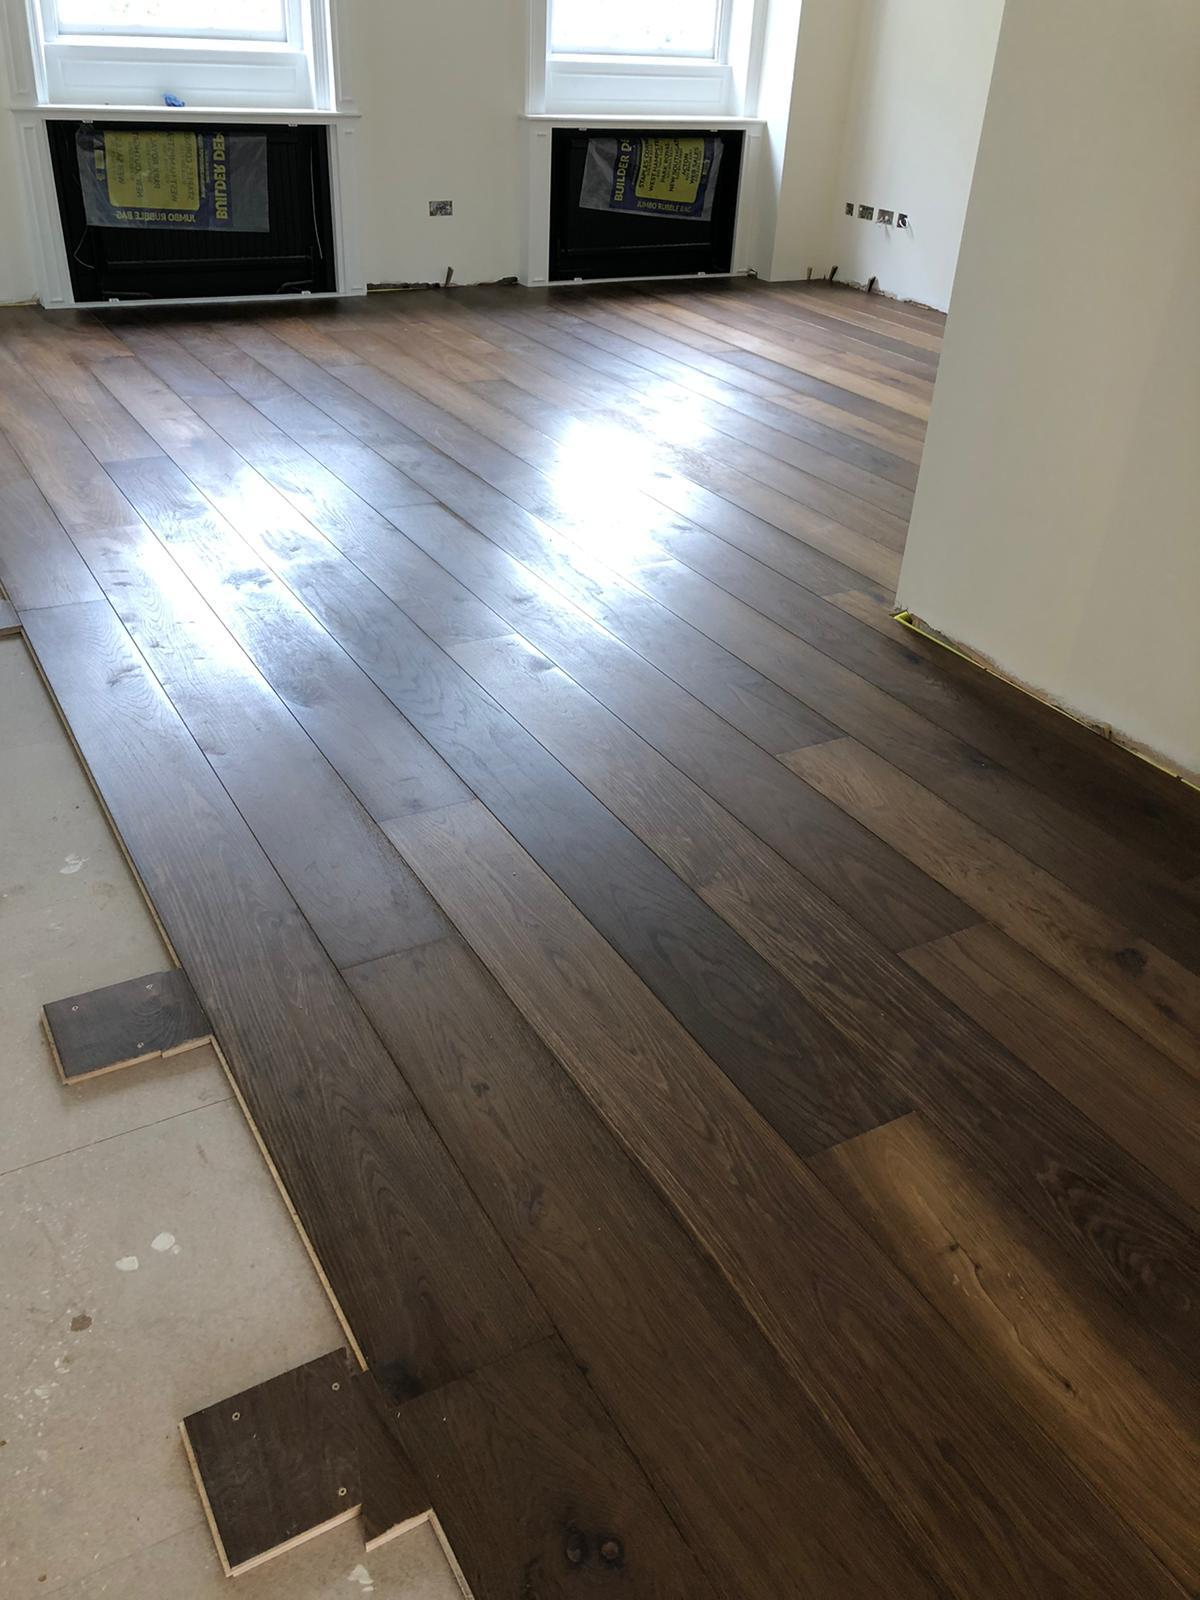 Rovers Flooring European Oak to Premises 1